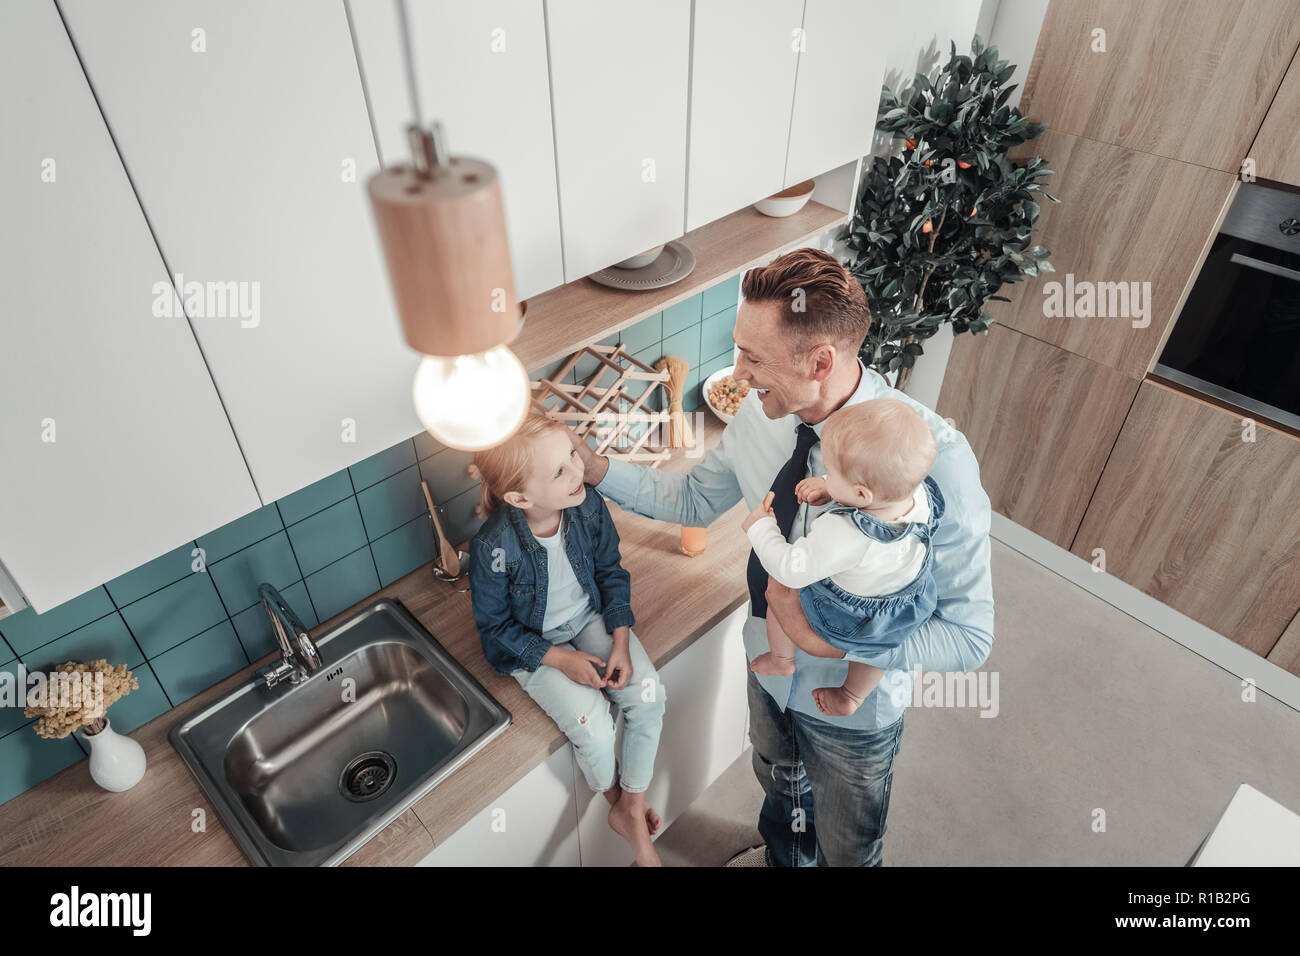 Satisfied lovely father smiling and spending time with children. - Stock Image